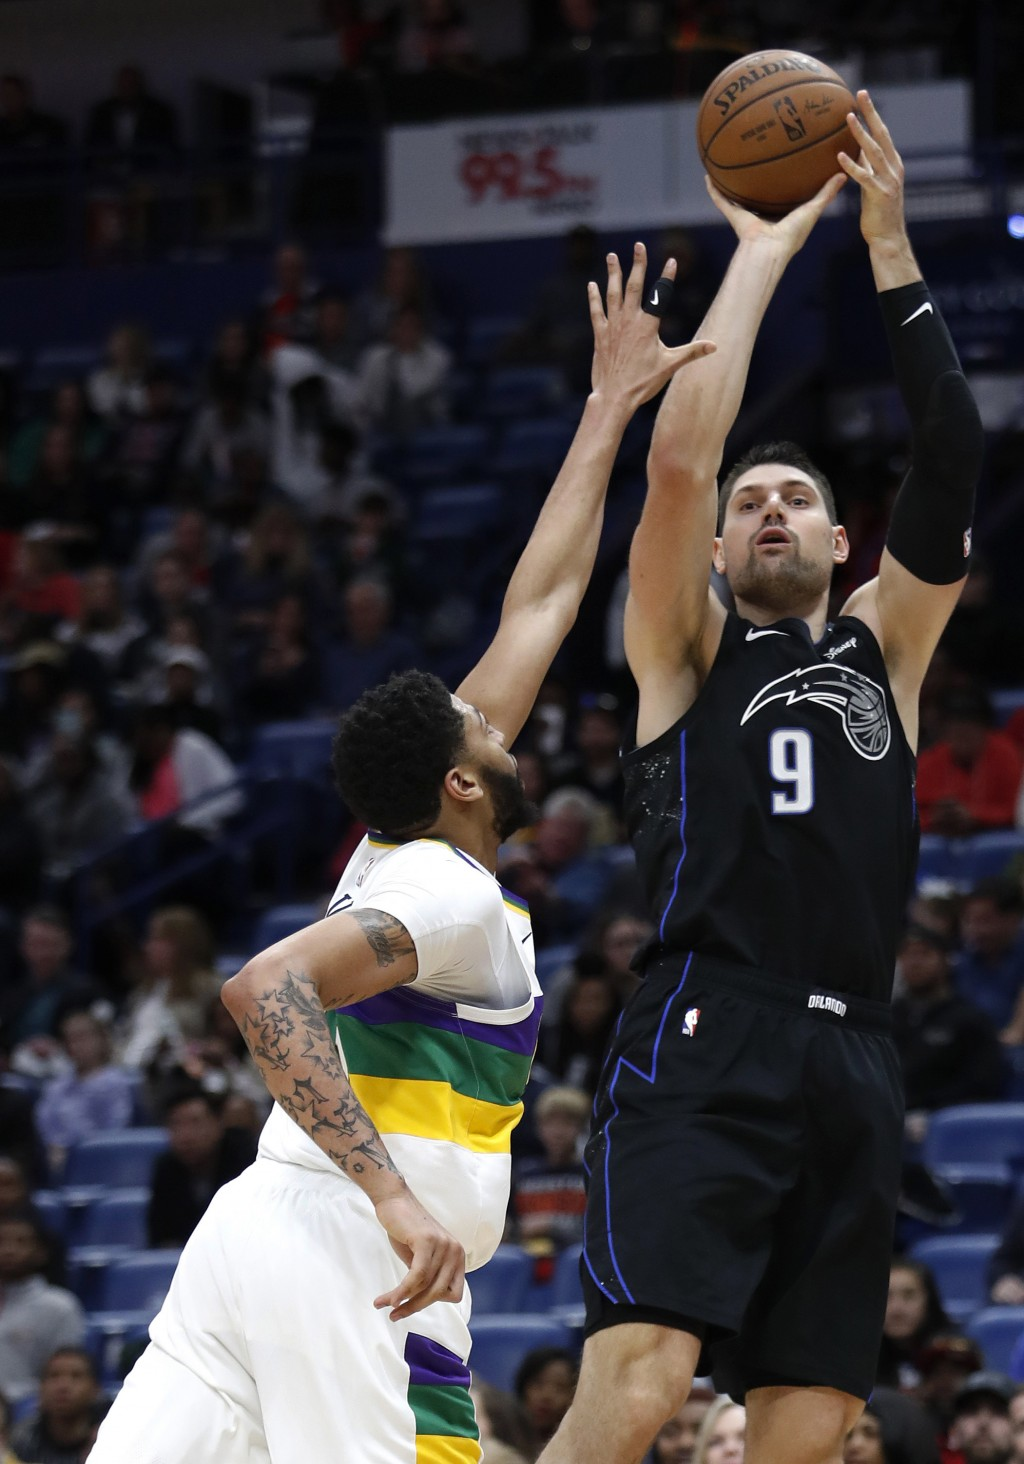 Orlando Magic center Nikola Vucevic (9) shoots over New Orleans Pelicans forward Anthony Davis (23) during the first half of an NBA basketball game in